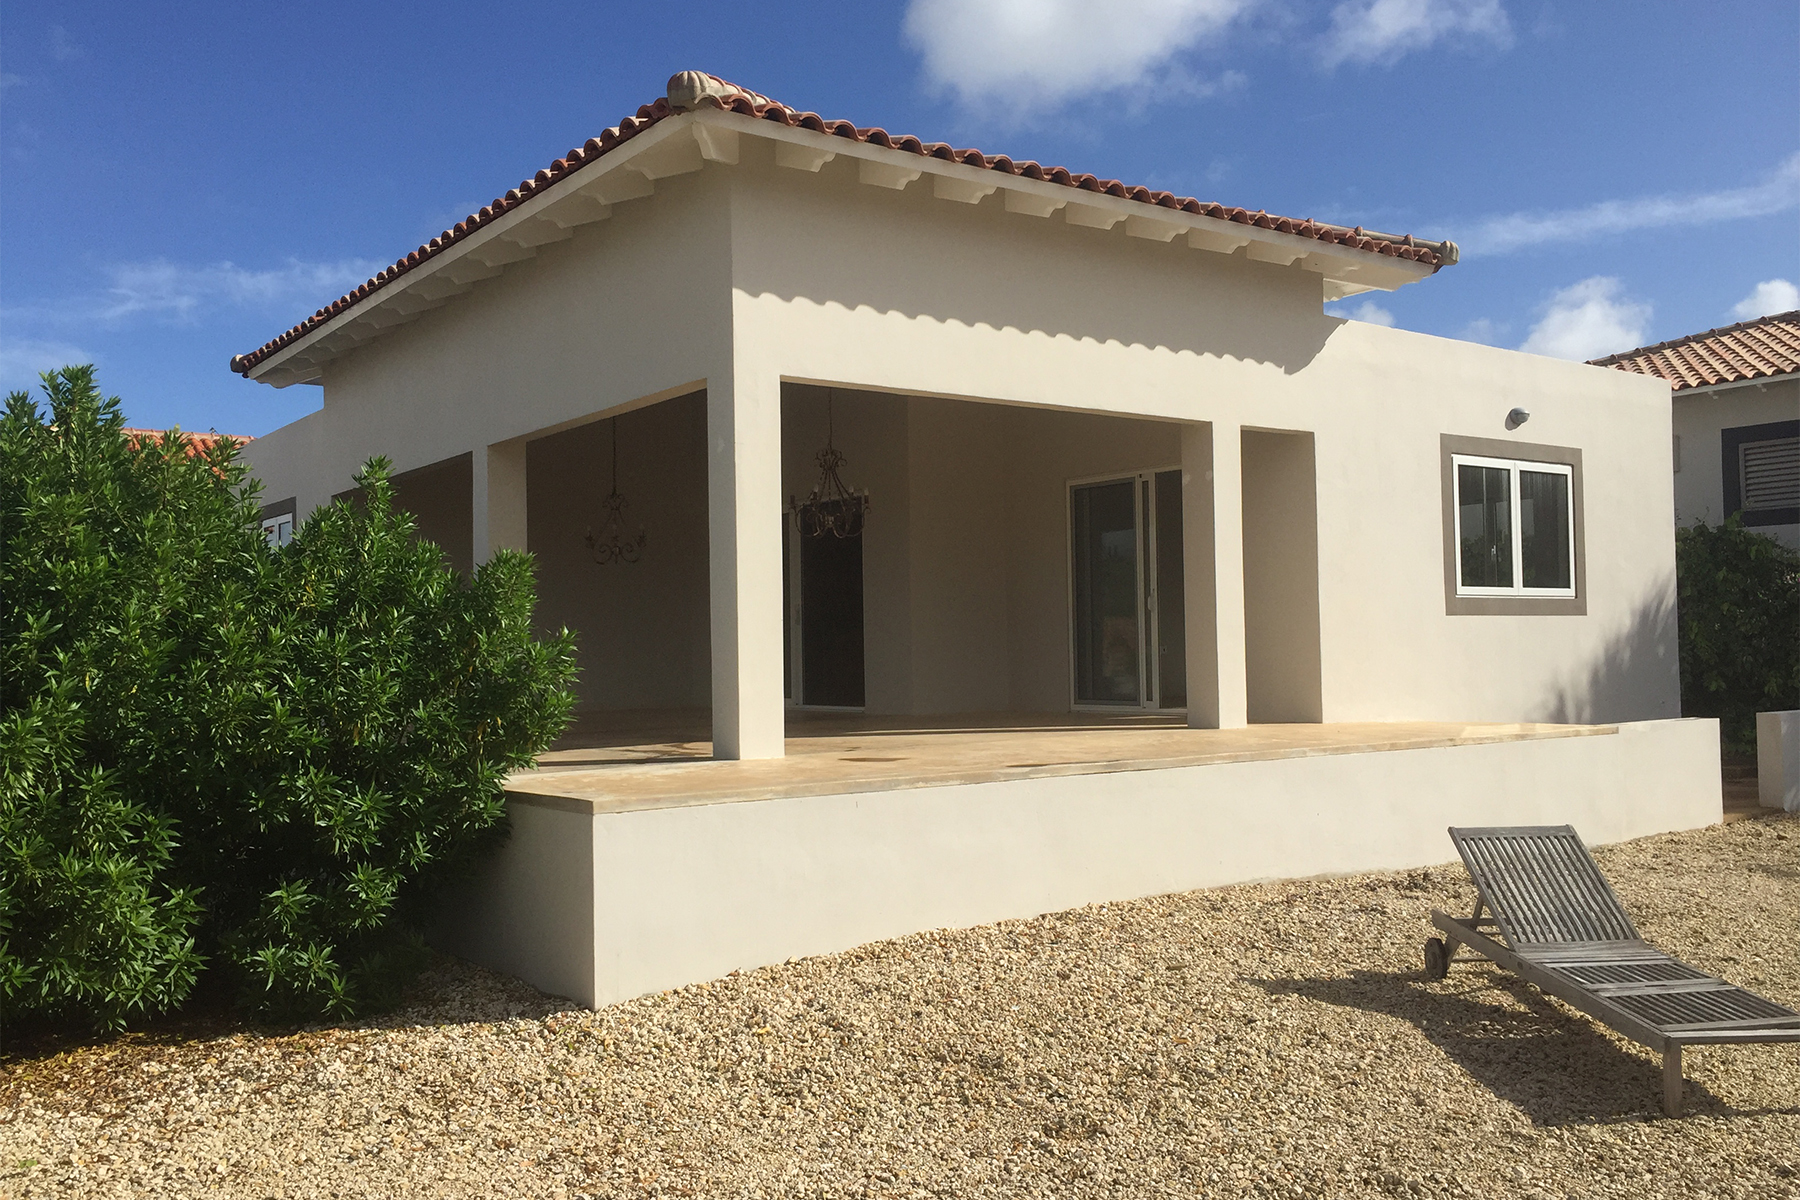 Additional photo for property listing at Villa Ike Other Cities In Bonaire, Cities In Bonaire Bonaire